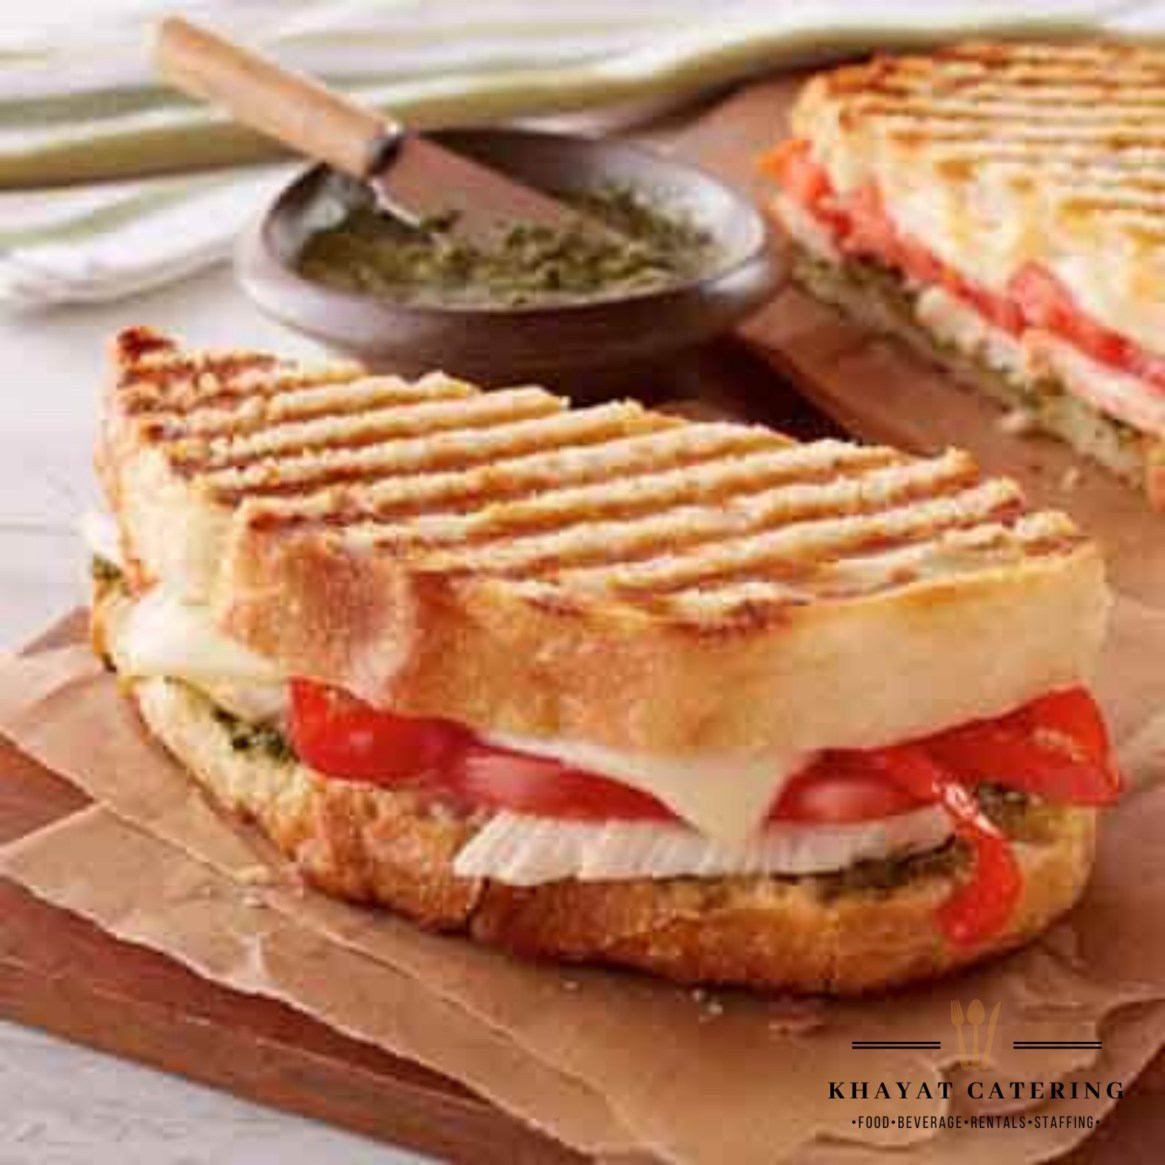 Khayat Catering chicken pesto panini